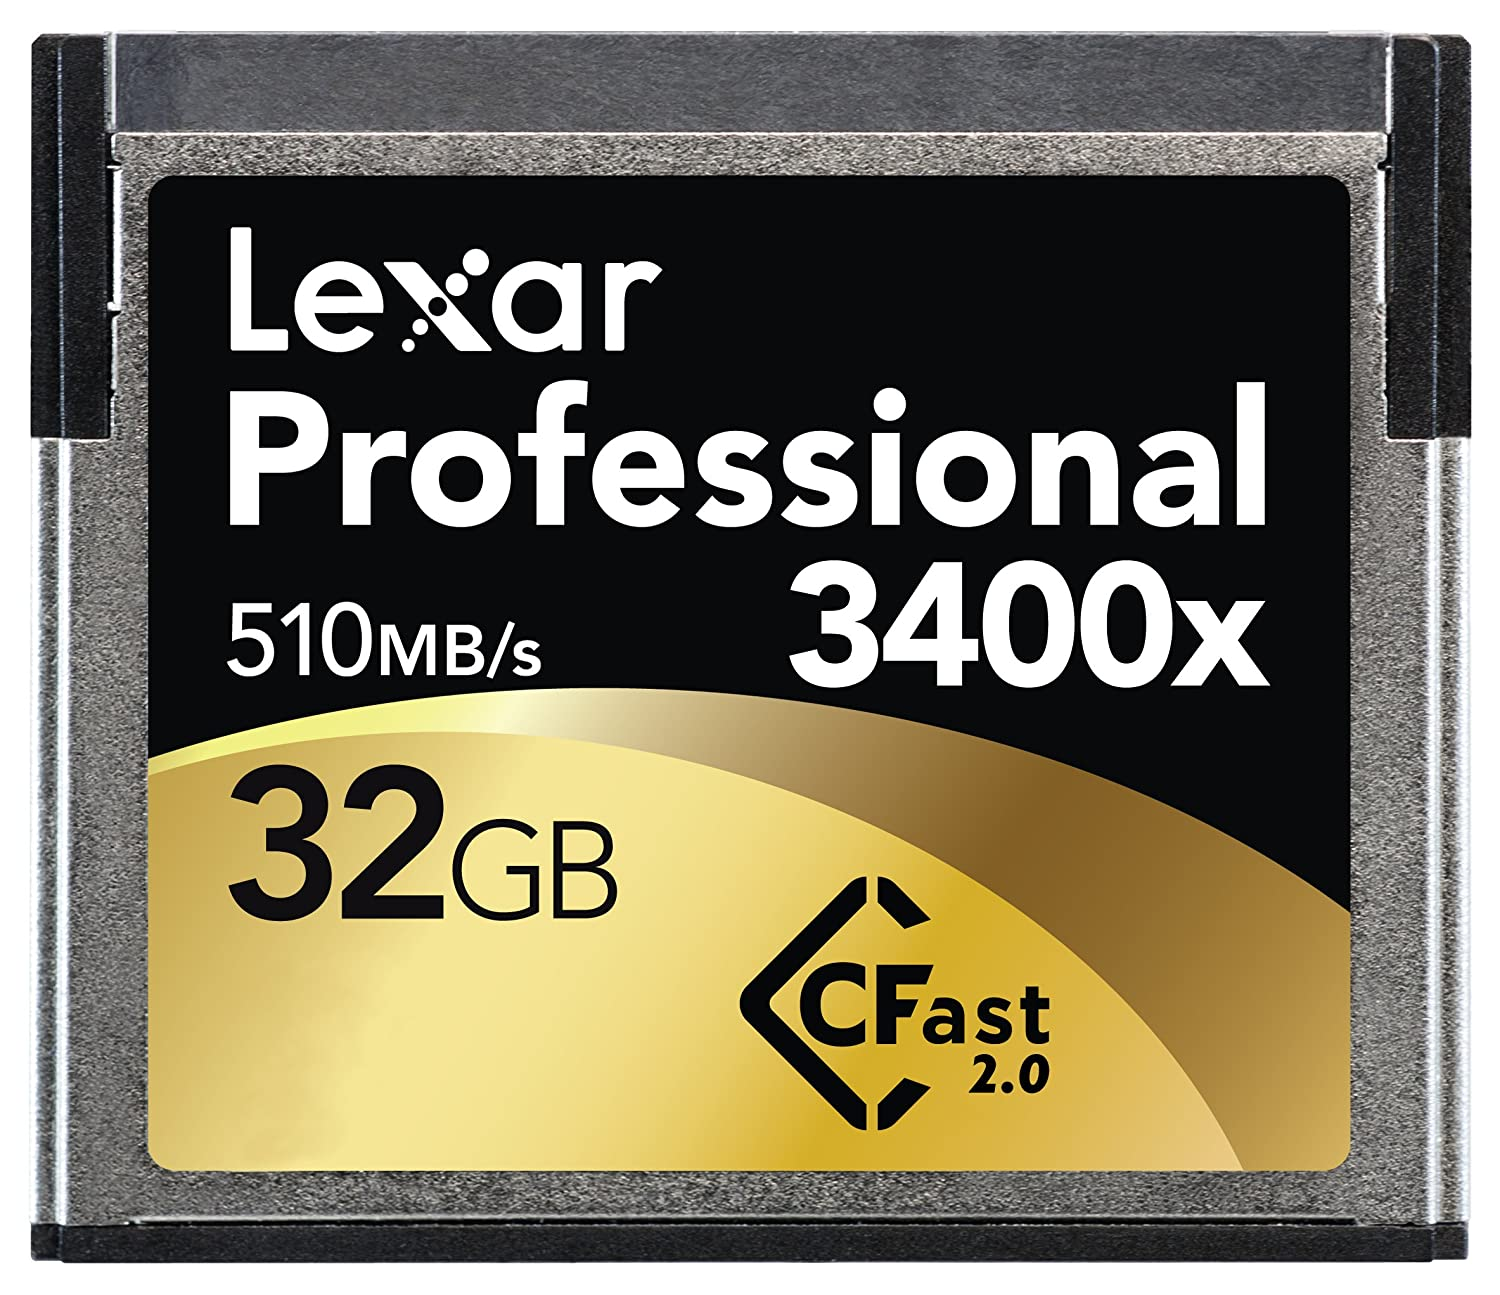 Lexar Professional 3400x 32GB CFast 2.0 Card (Up to 510MB/s Read) w/Image Rescue 5 Software LC32GCRBNA3400 LEXAR MEDIA INC